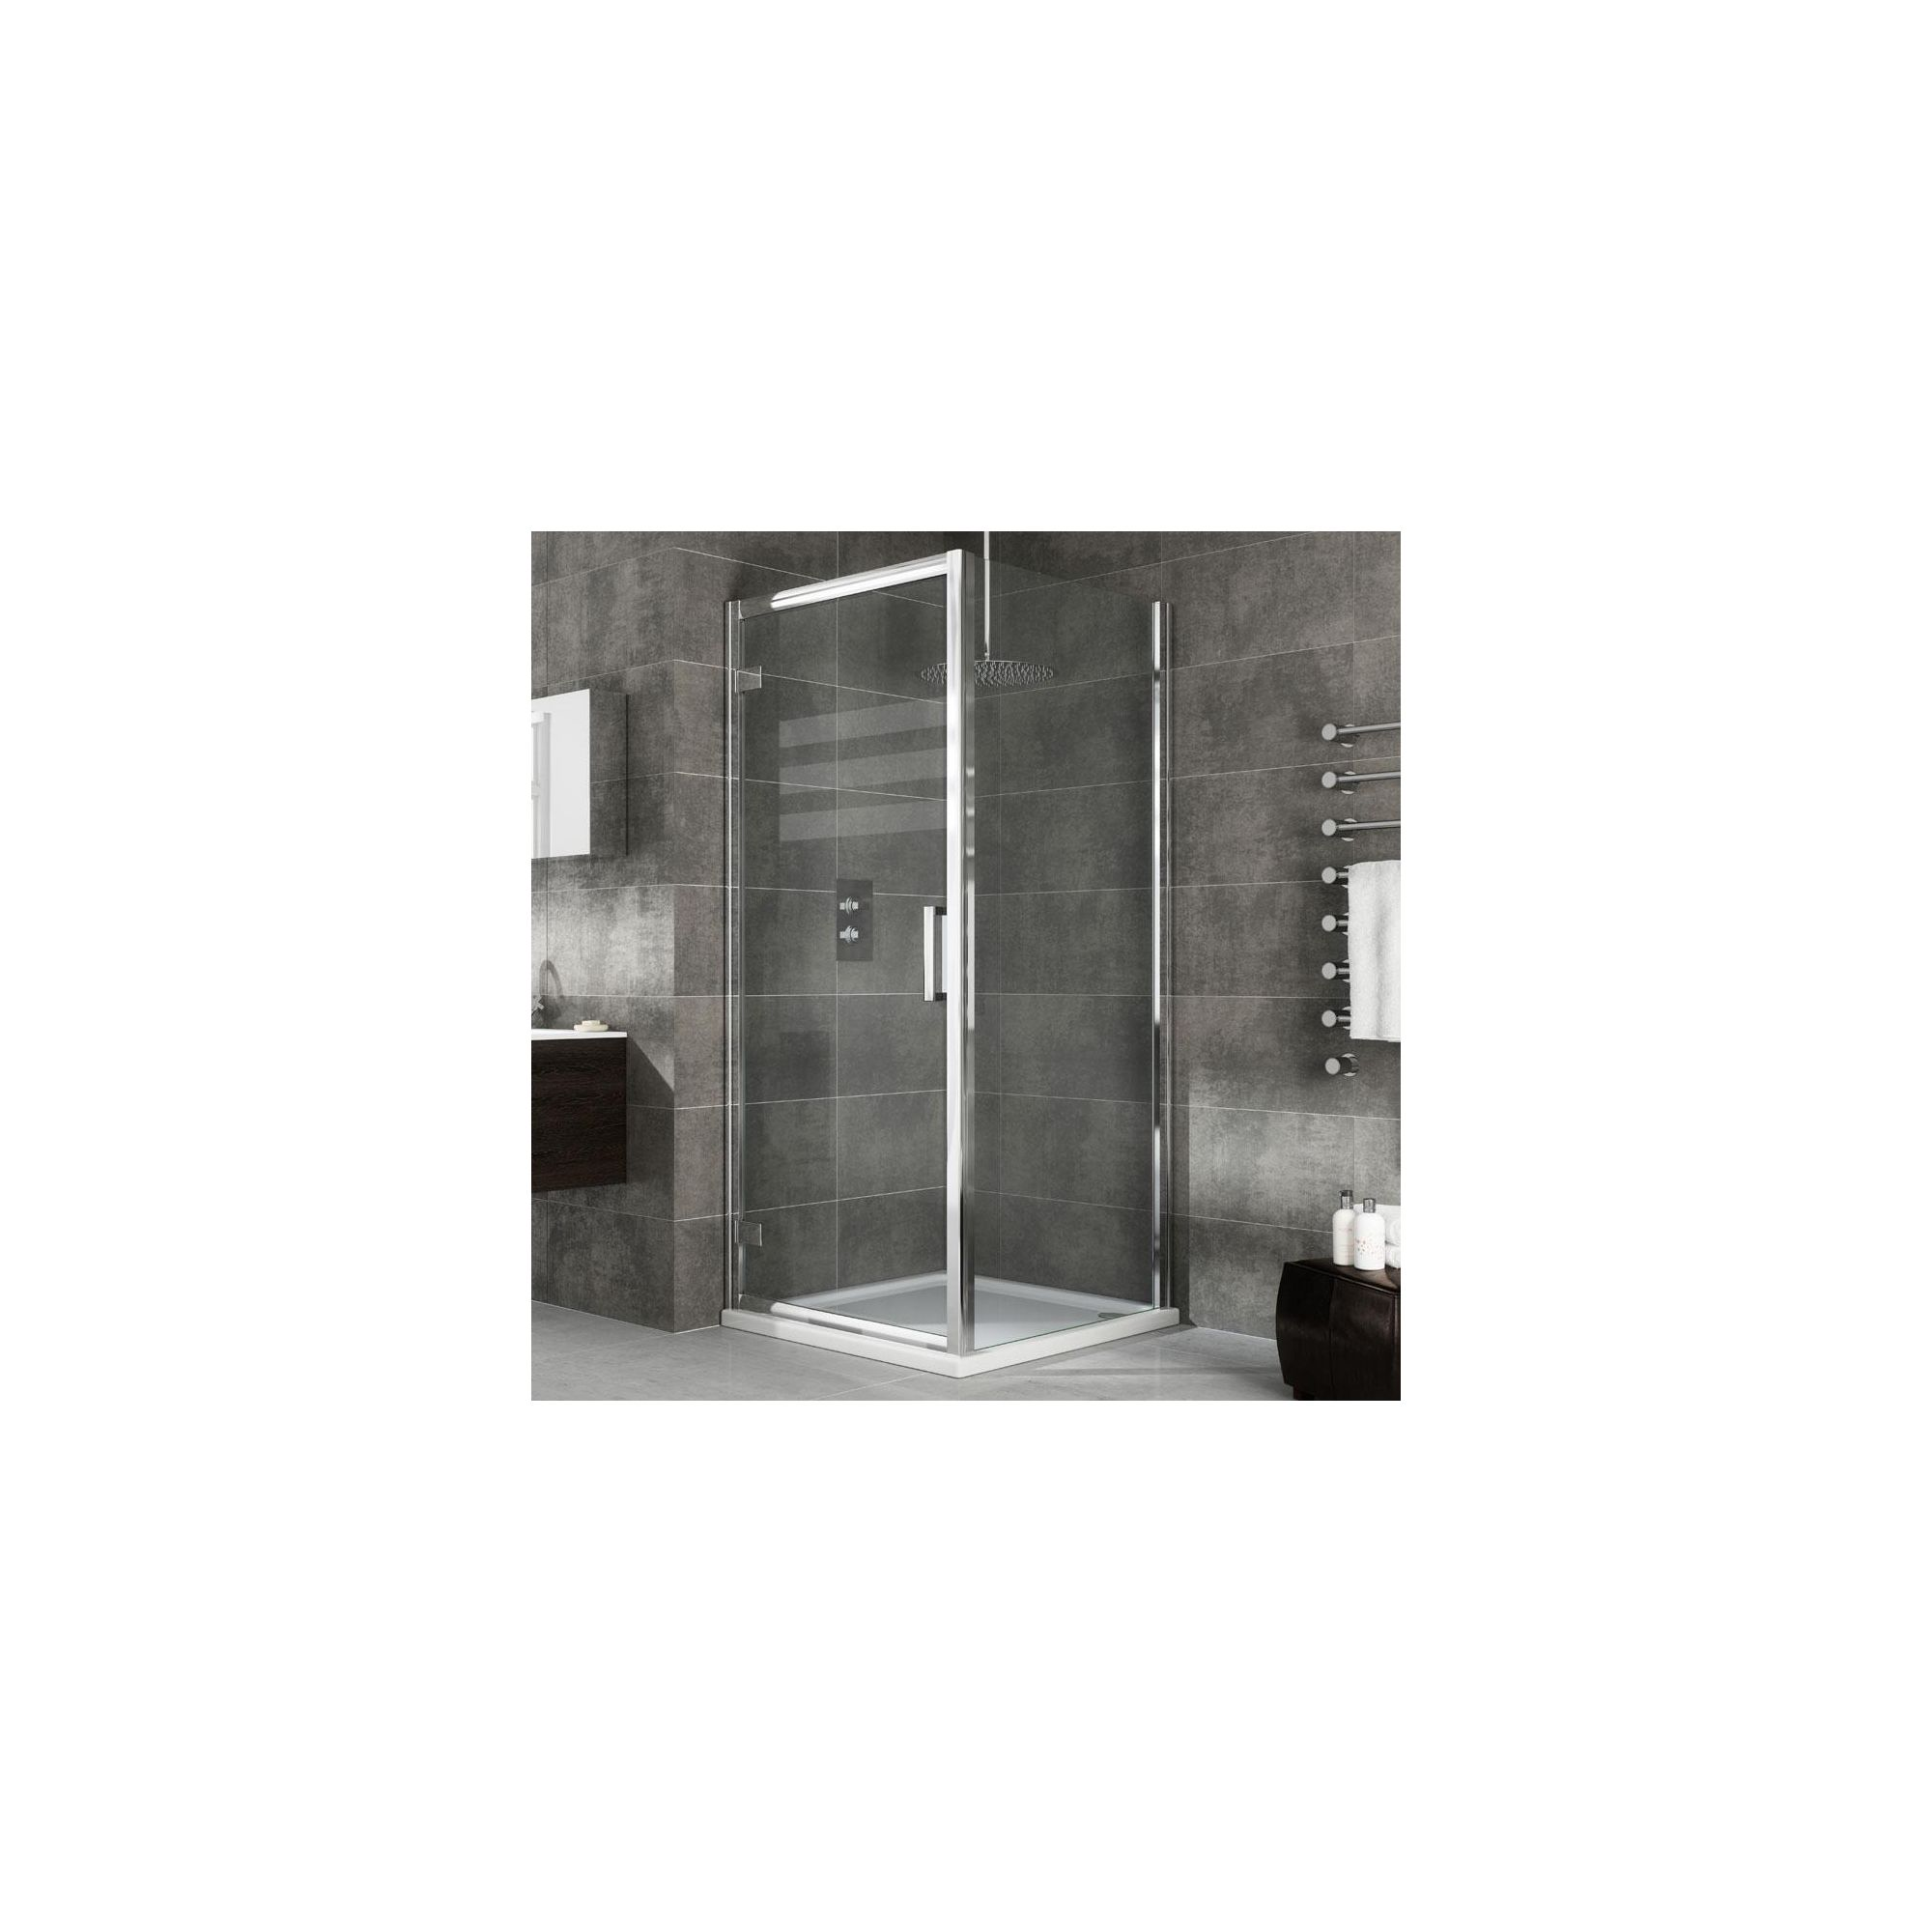 Elemis Eternity Hinged Door Shower Enclosure, 900mm x 900mm, 8mm Glass, Low Profile Tray at Tesco Direct